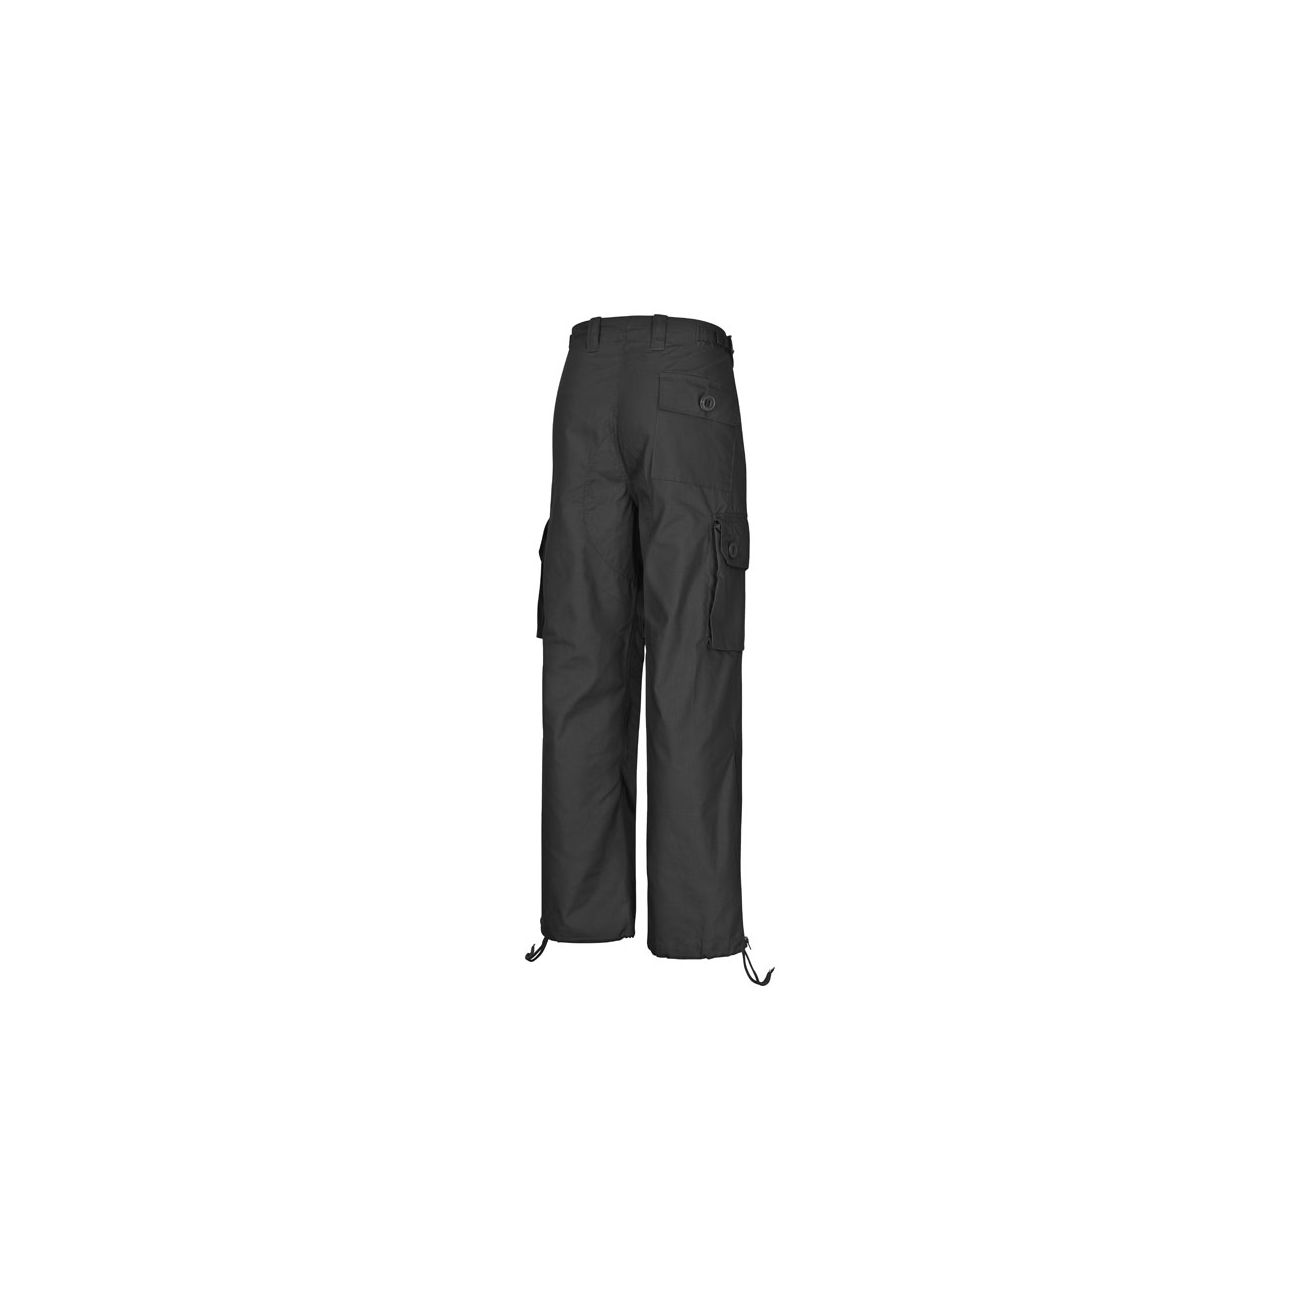 Kommandohose Light Weight Mil-Tec schwarz 1